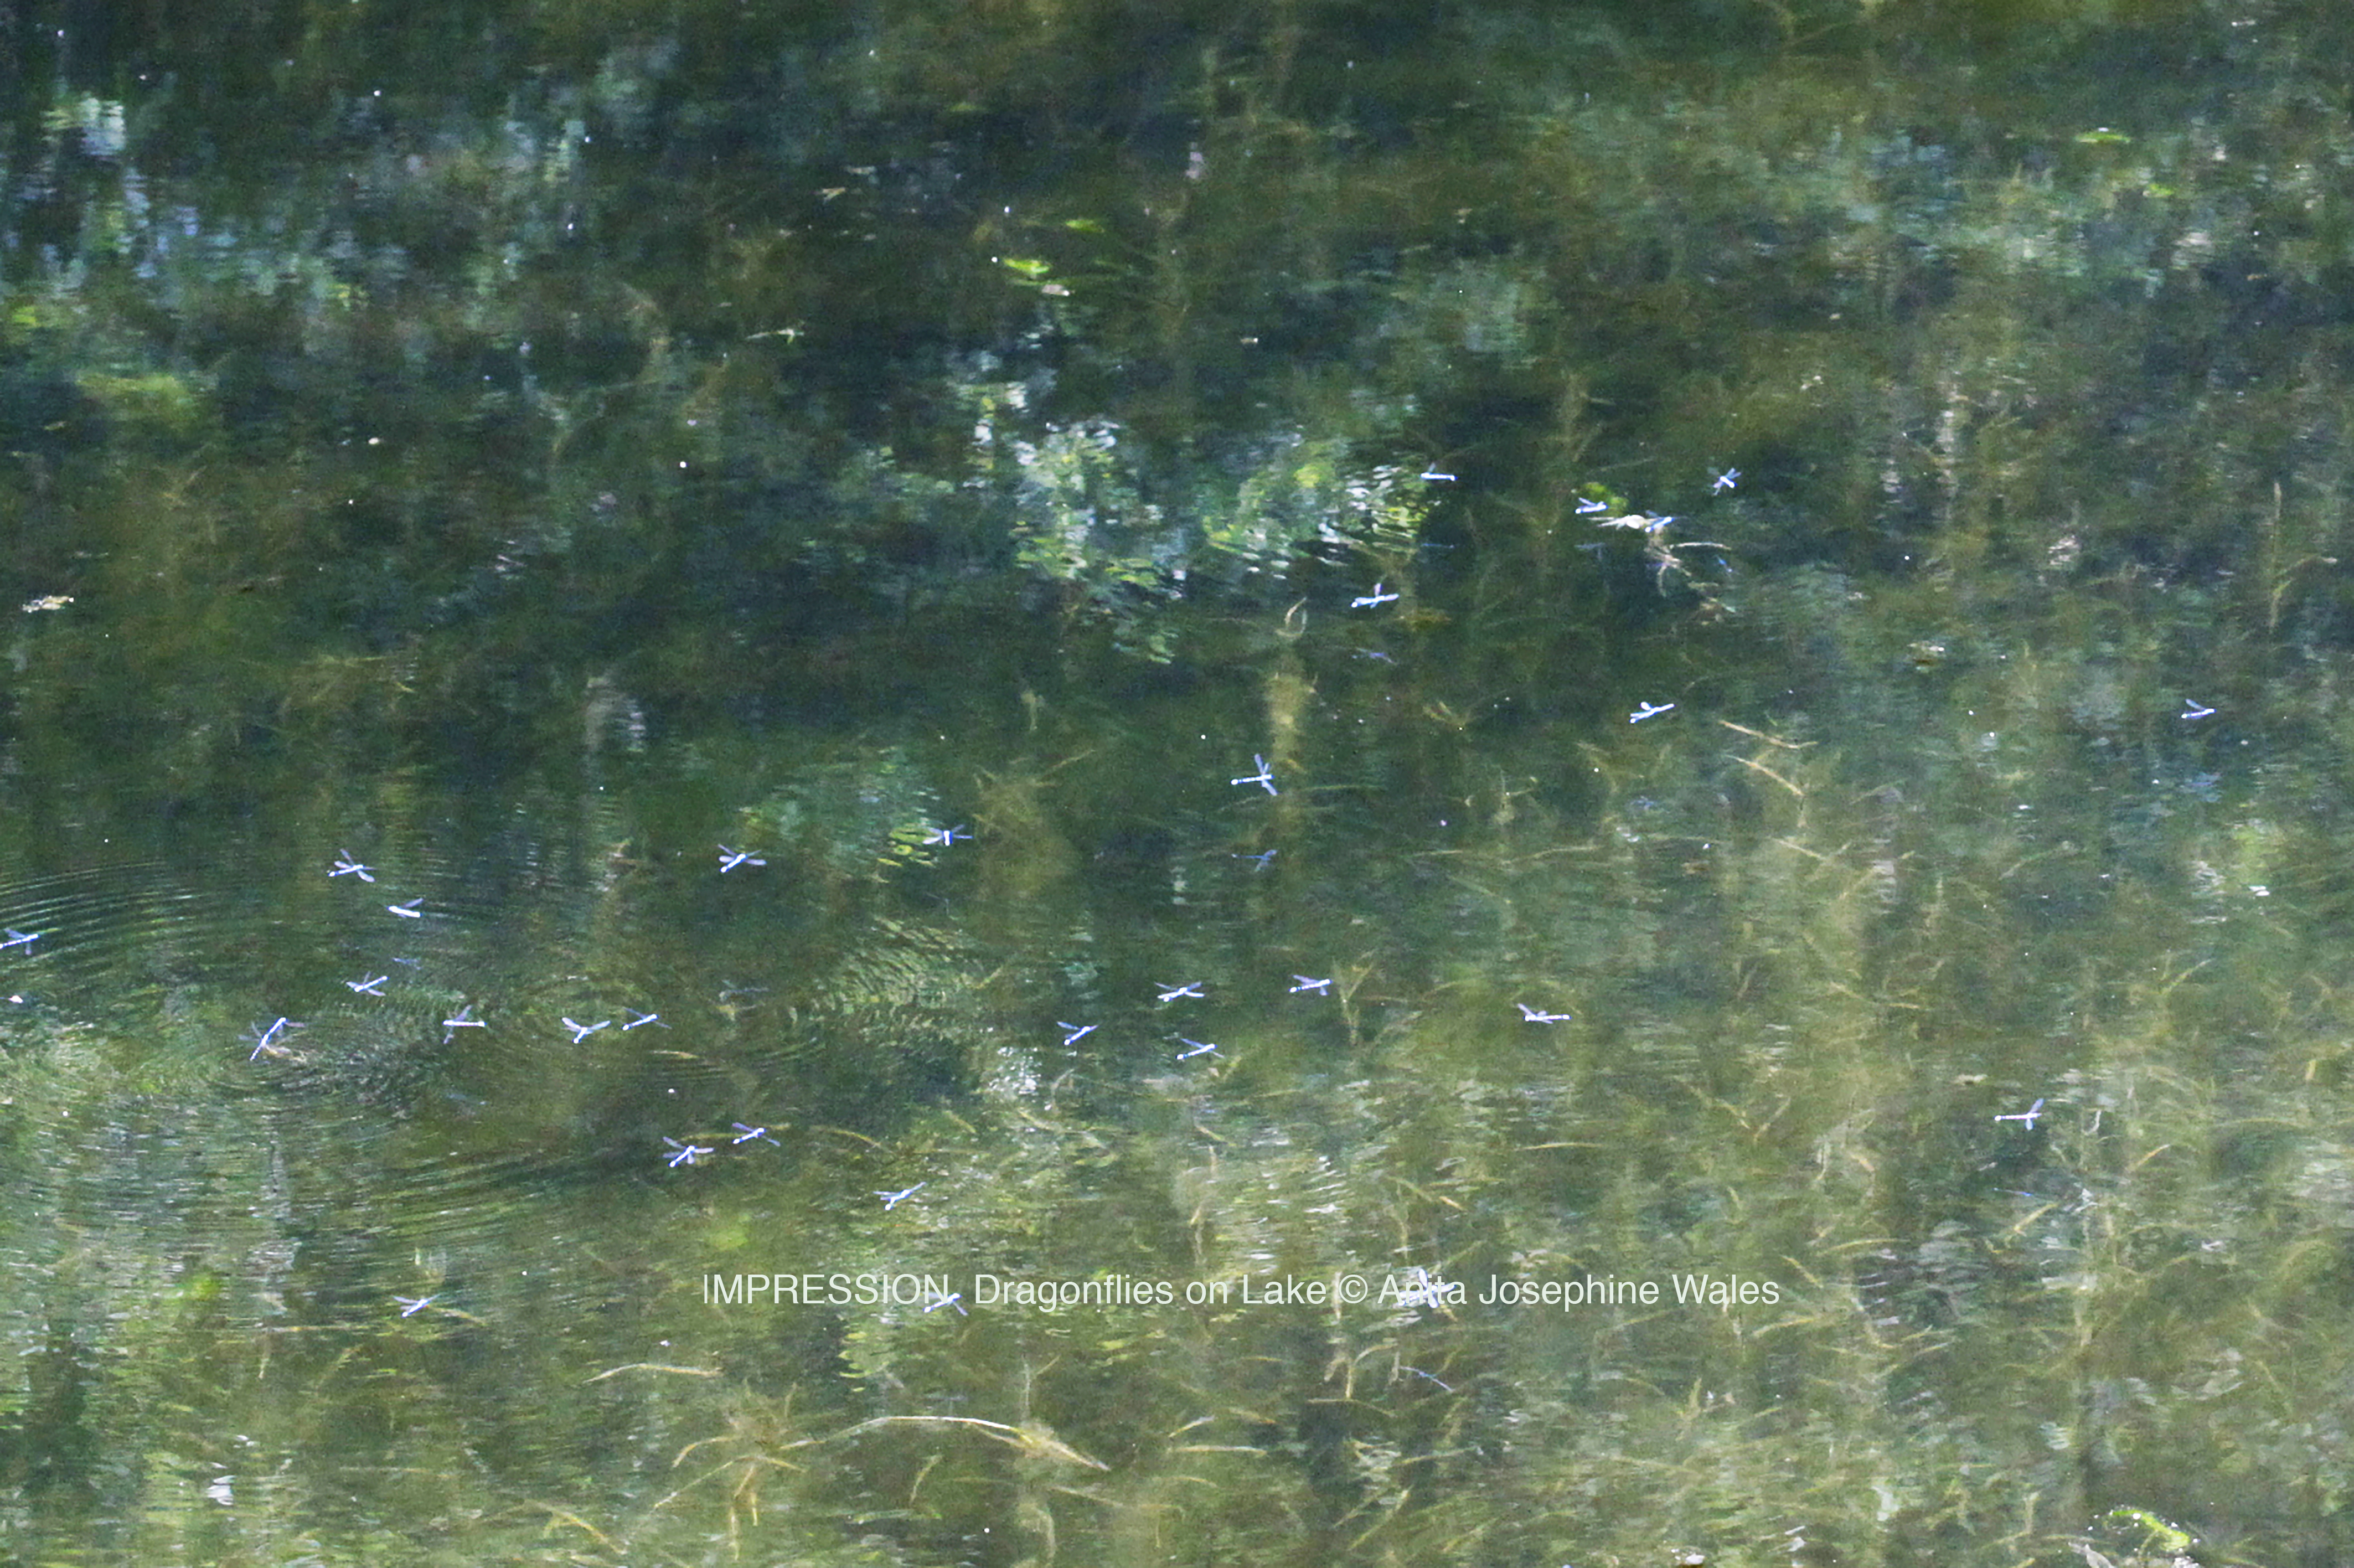 CoCreationFromTHeArt © Anita Josephine Wales _IMPRESSION Dragonflies on Lake_www.wales.dk